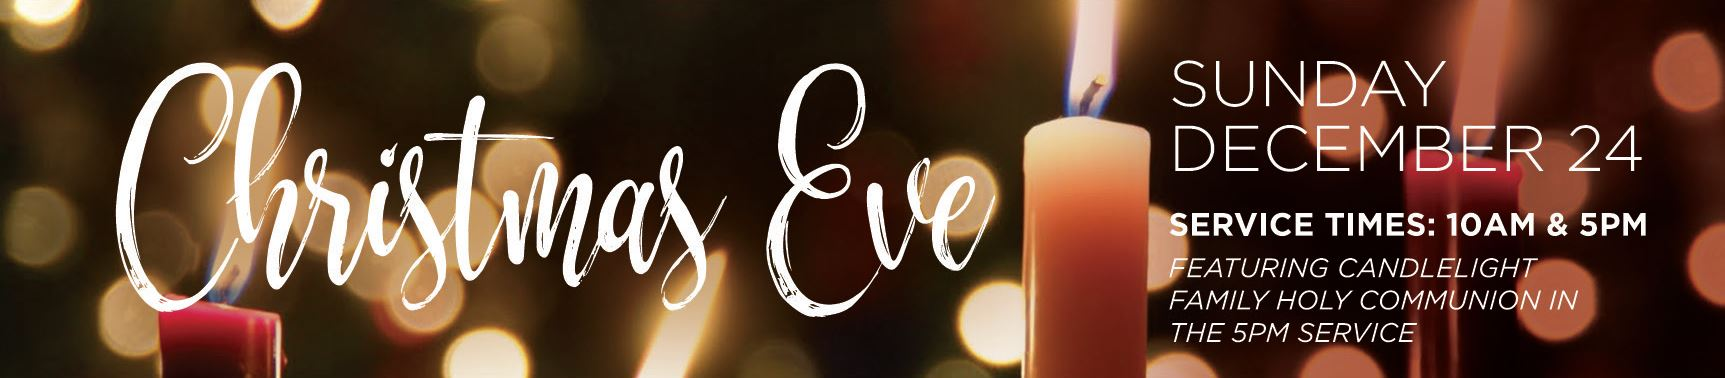 Christmas Eve - Sunday, December 24 | Holy Communion 10AM - Family Christmas 5PM